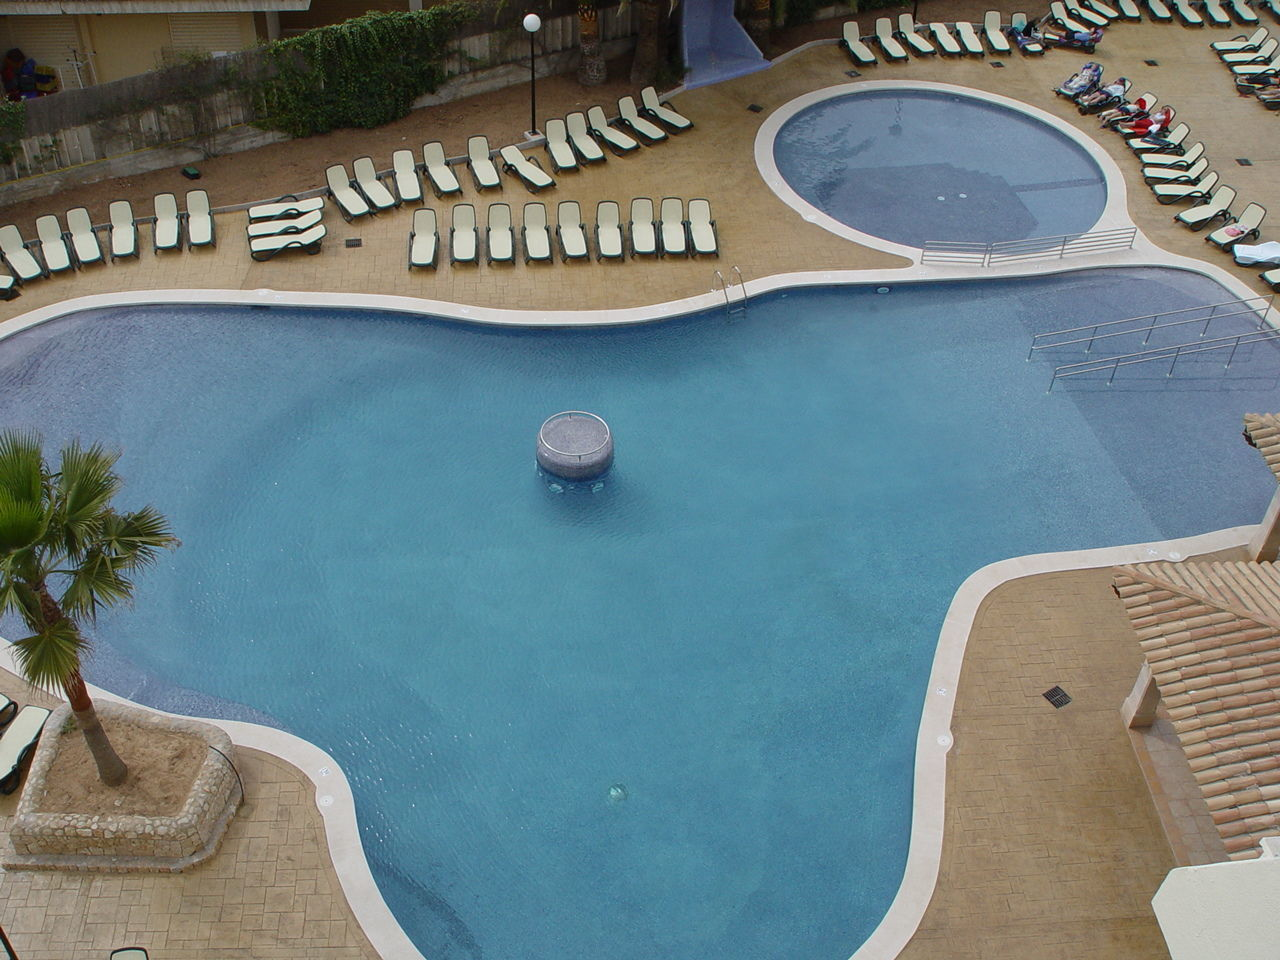 swimming pool, no people, water, day, outdoors